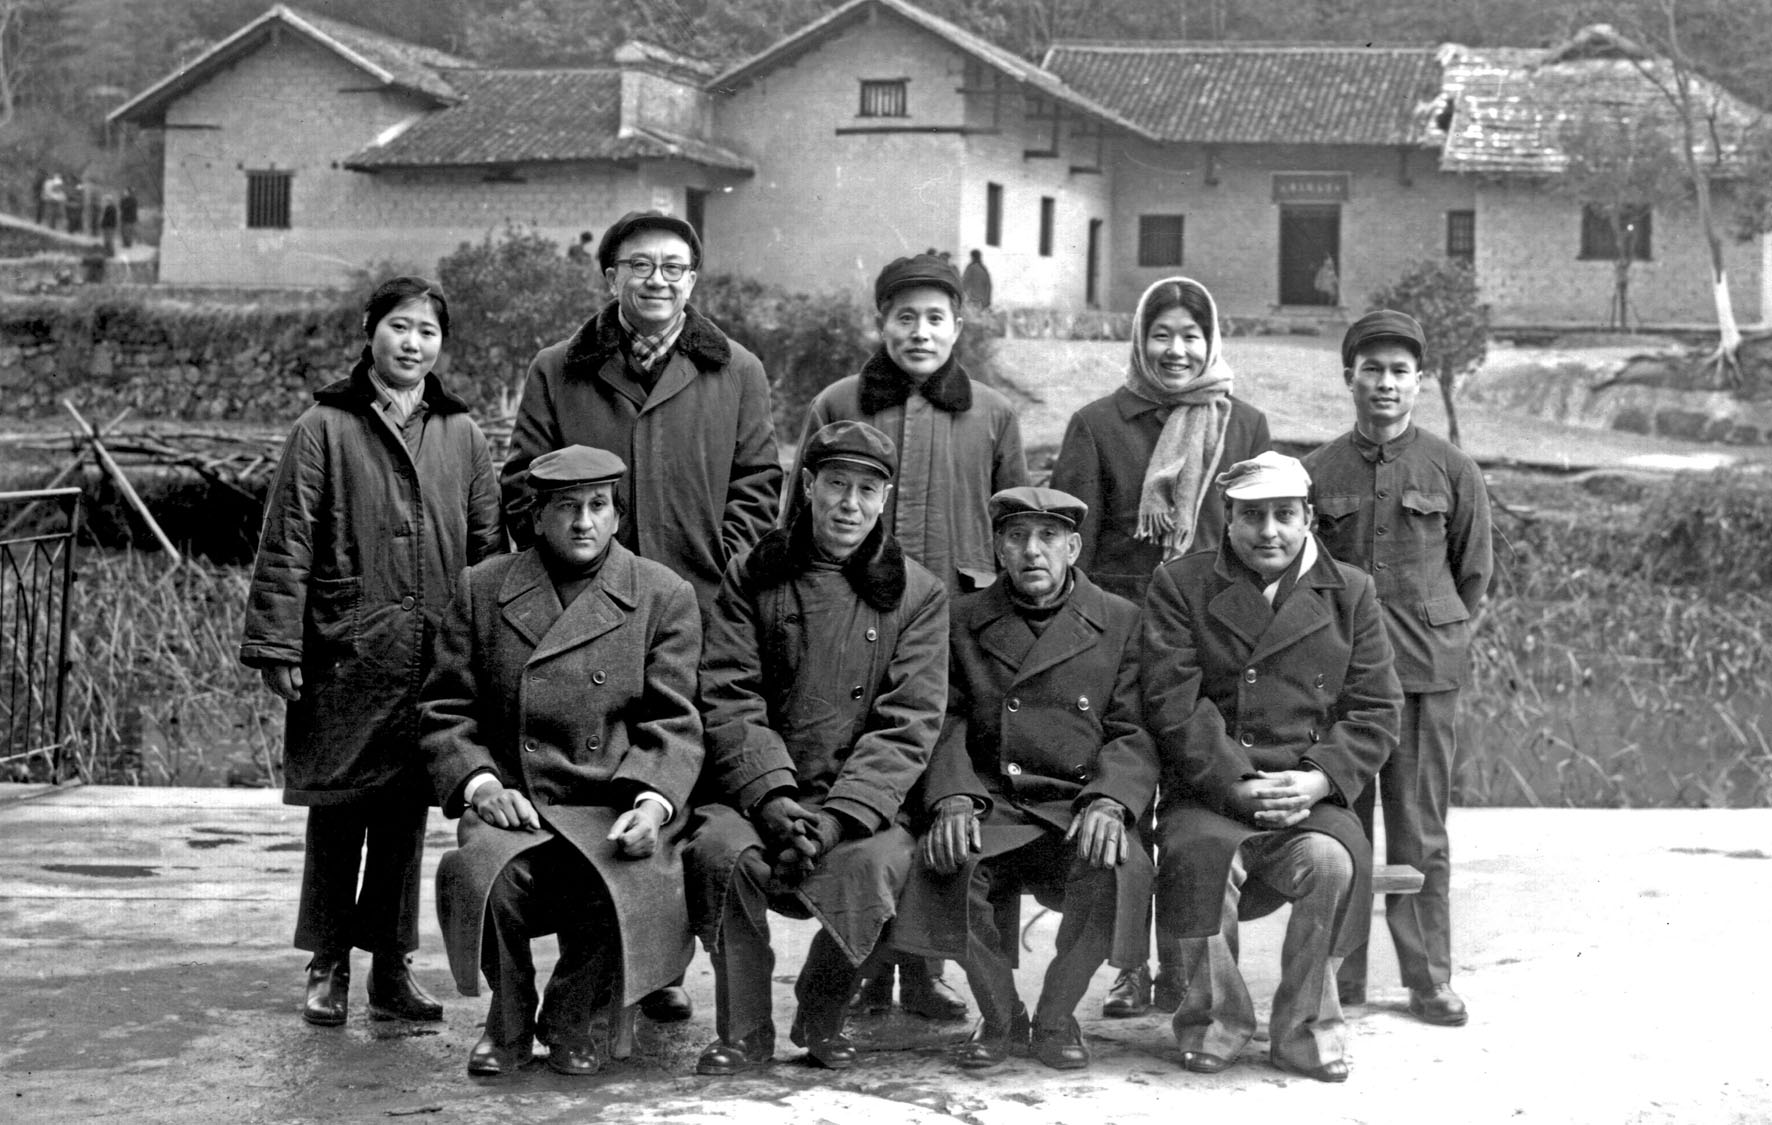 Feb 1978: IWA (GB) leaders Jagmohan Joshi (bottom left), Teja Singh (second from bottom right) and Avatar Johal (bottom right) meet members of the Communist Party of China at Mao's birth place in Shaoshan, China. The image is indicative of the IWA (GB)'s Maoist tilt, which informed their stance on the Naxalbari insurgency as well as their anti-racism work in Britain. Image:    CPGB (ML)/Flickr